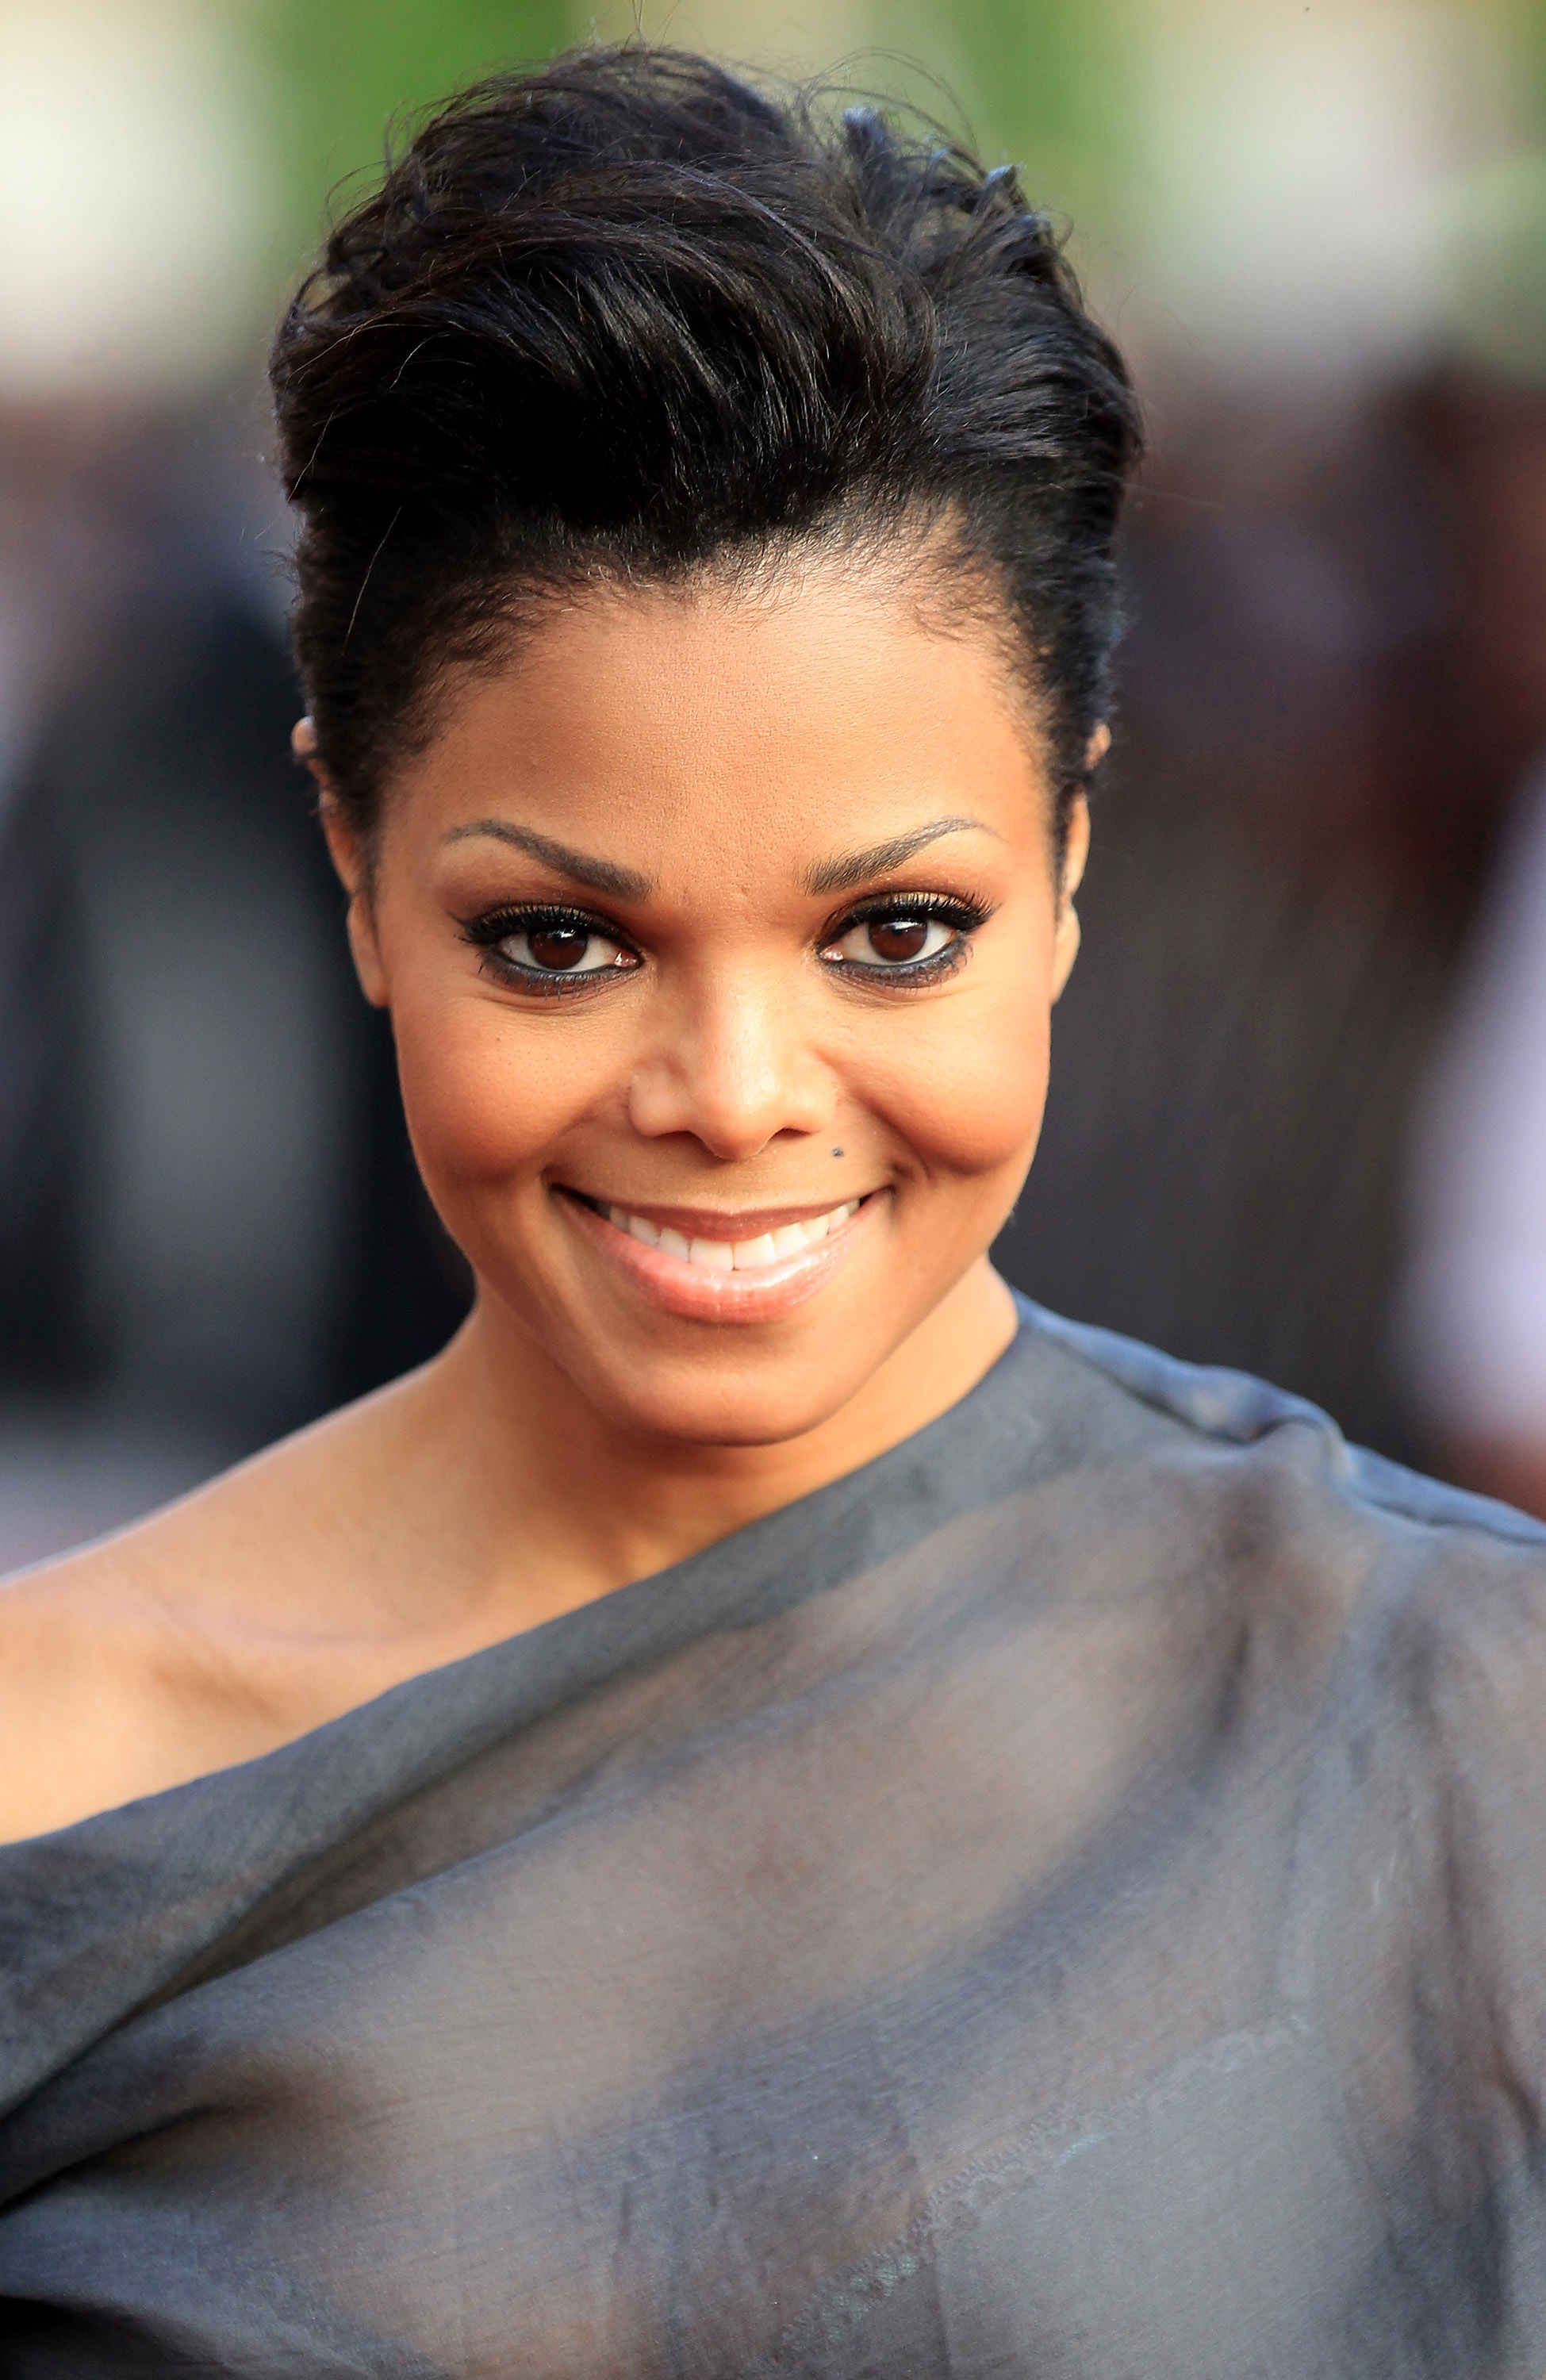 Tremendous 45 Black Hairstyles For Short Hair Short Haircuts For Black Women Hairstyles For Women Draintrainus